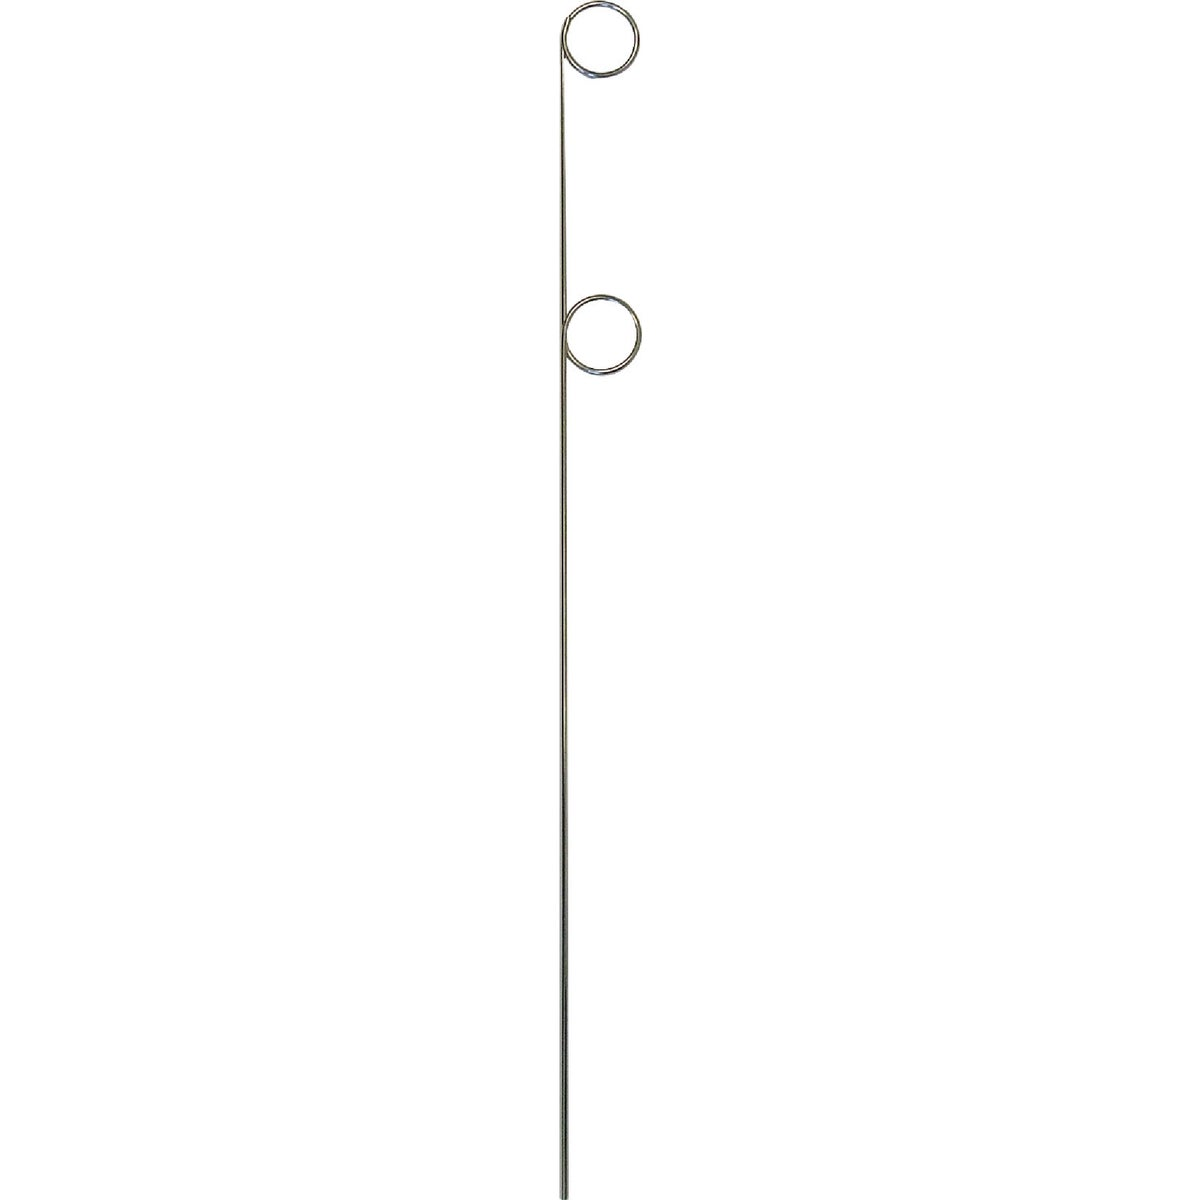 "28"" METAL SIGN STAKE - 40640 by Hy Ko Prods Co"